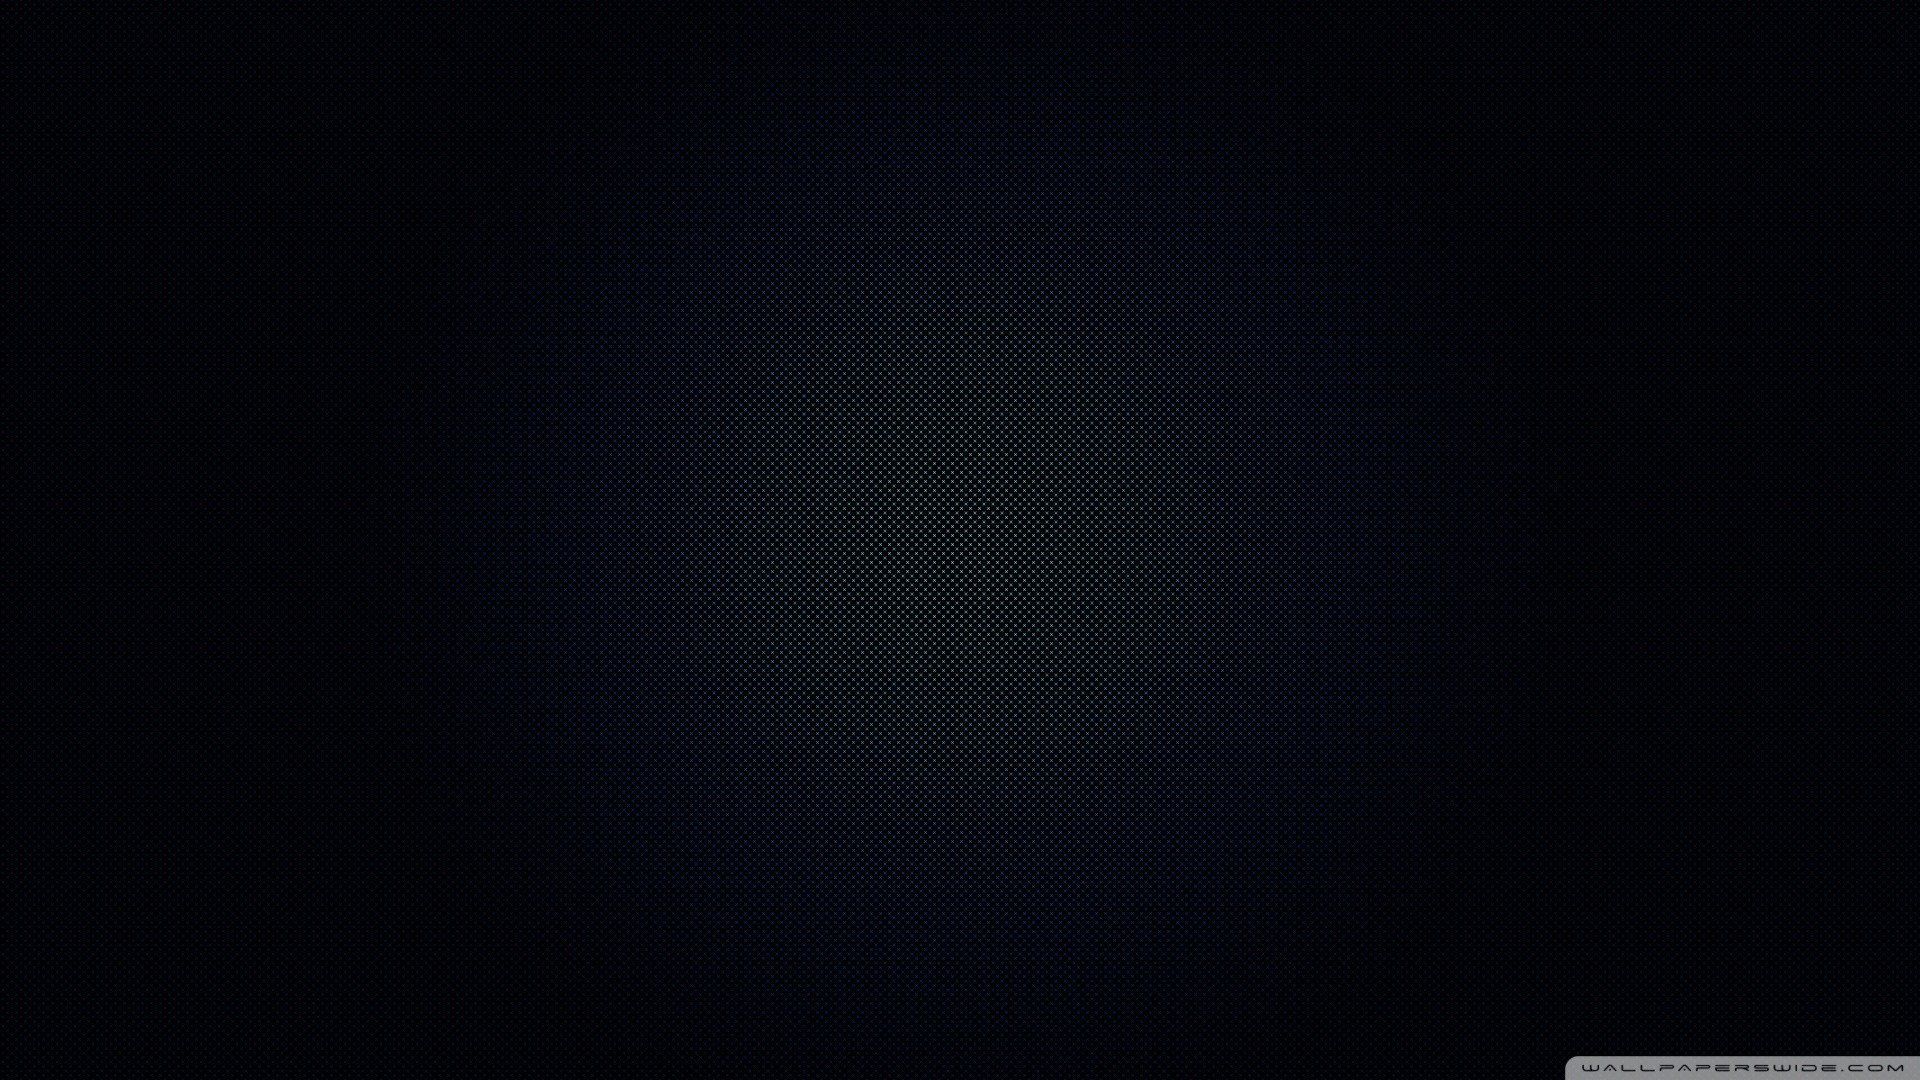 Black Texture Wallpaper 183 ① Download Free Cool High